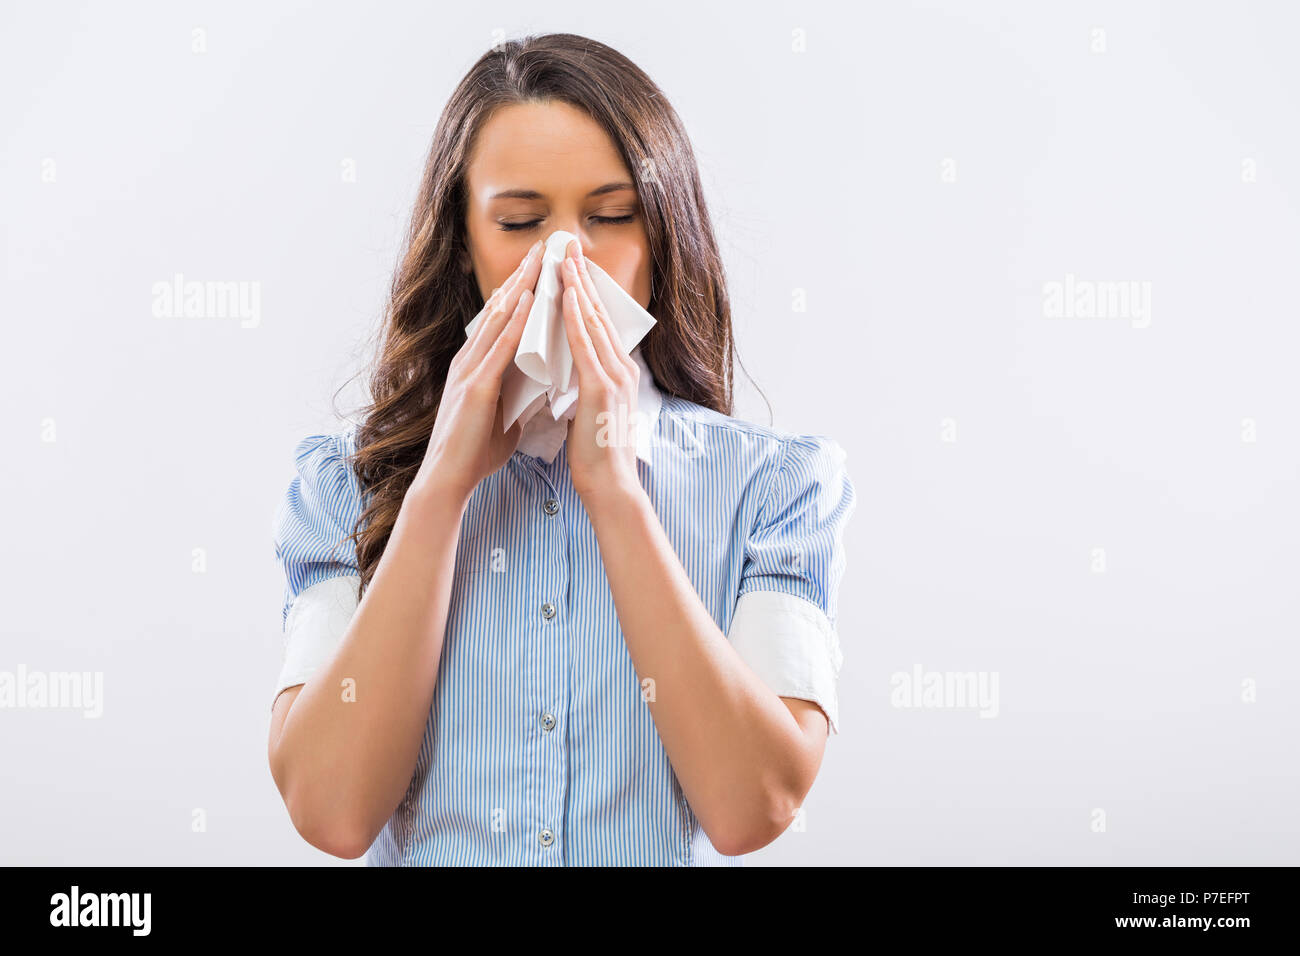 Image of businesswoman blowing nose on gray background. - Stock Image